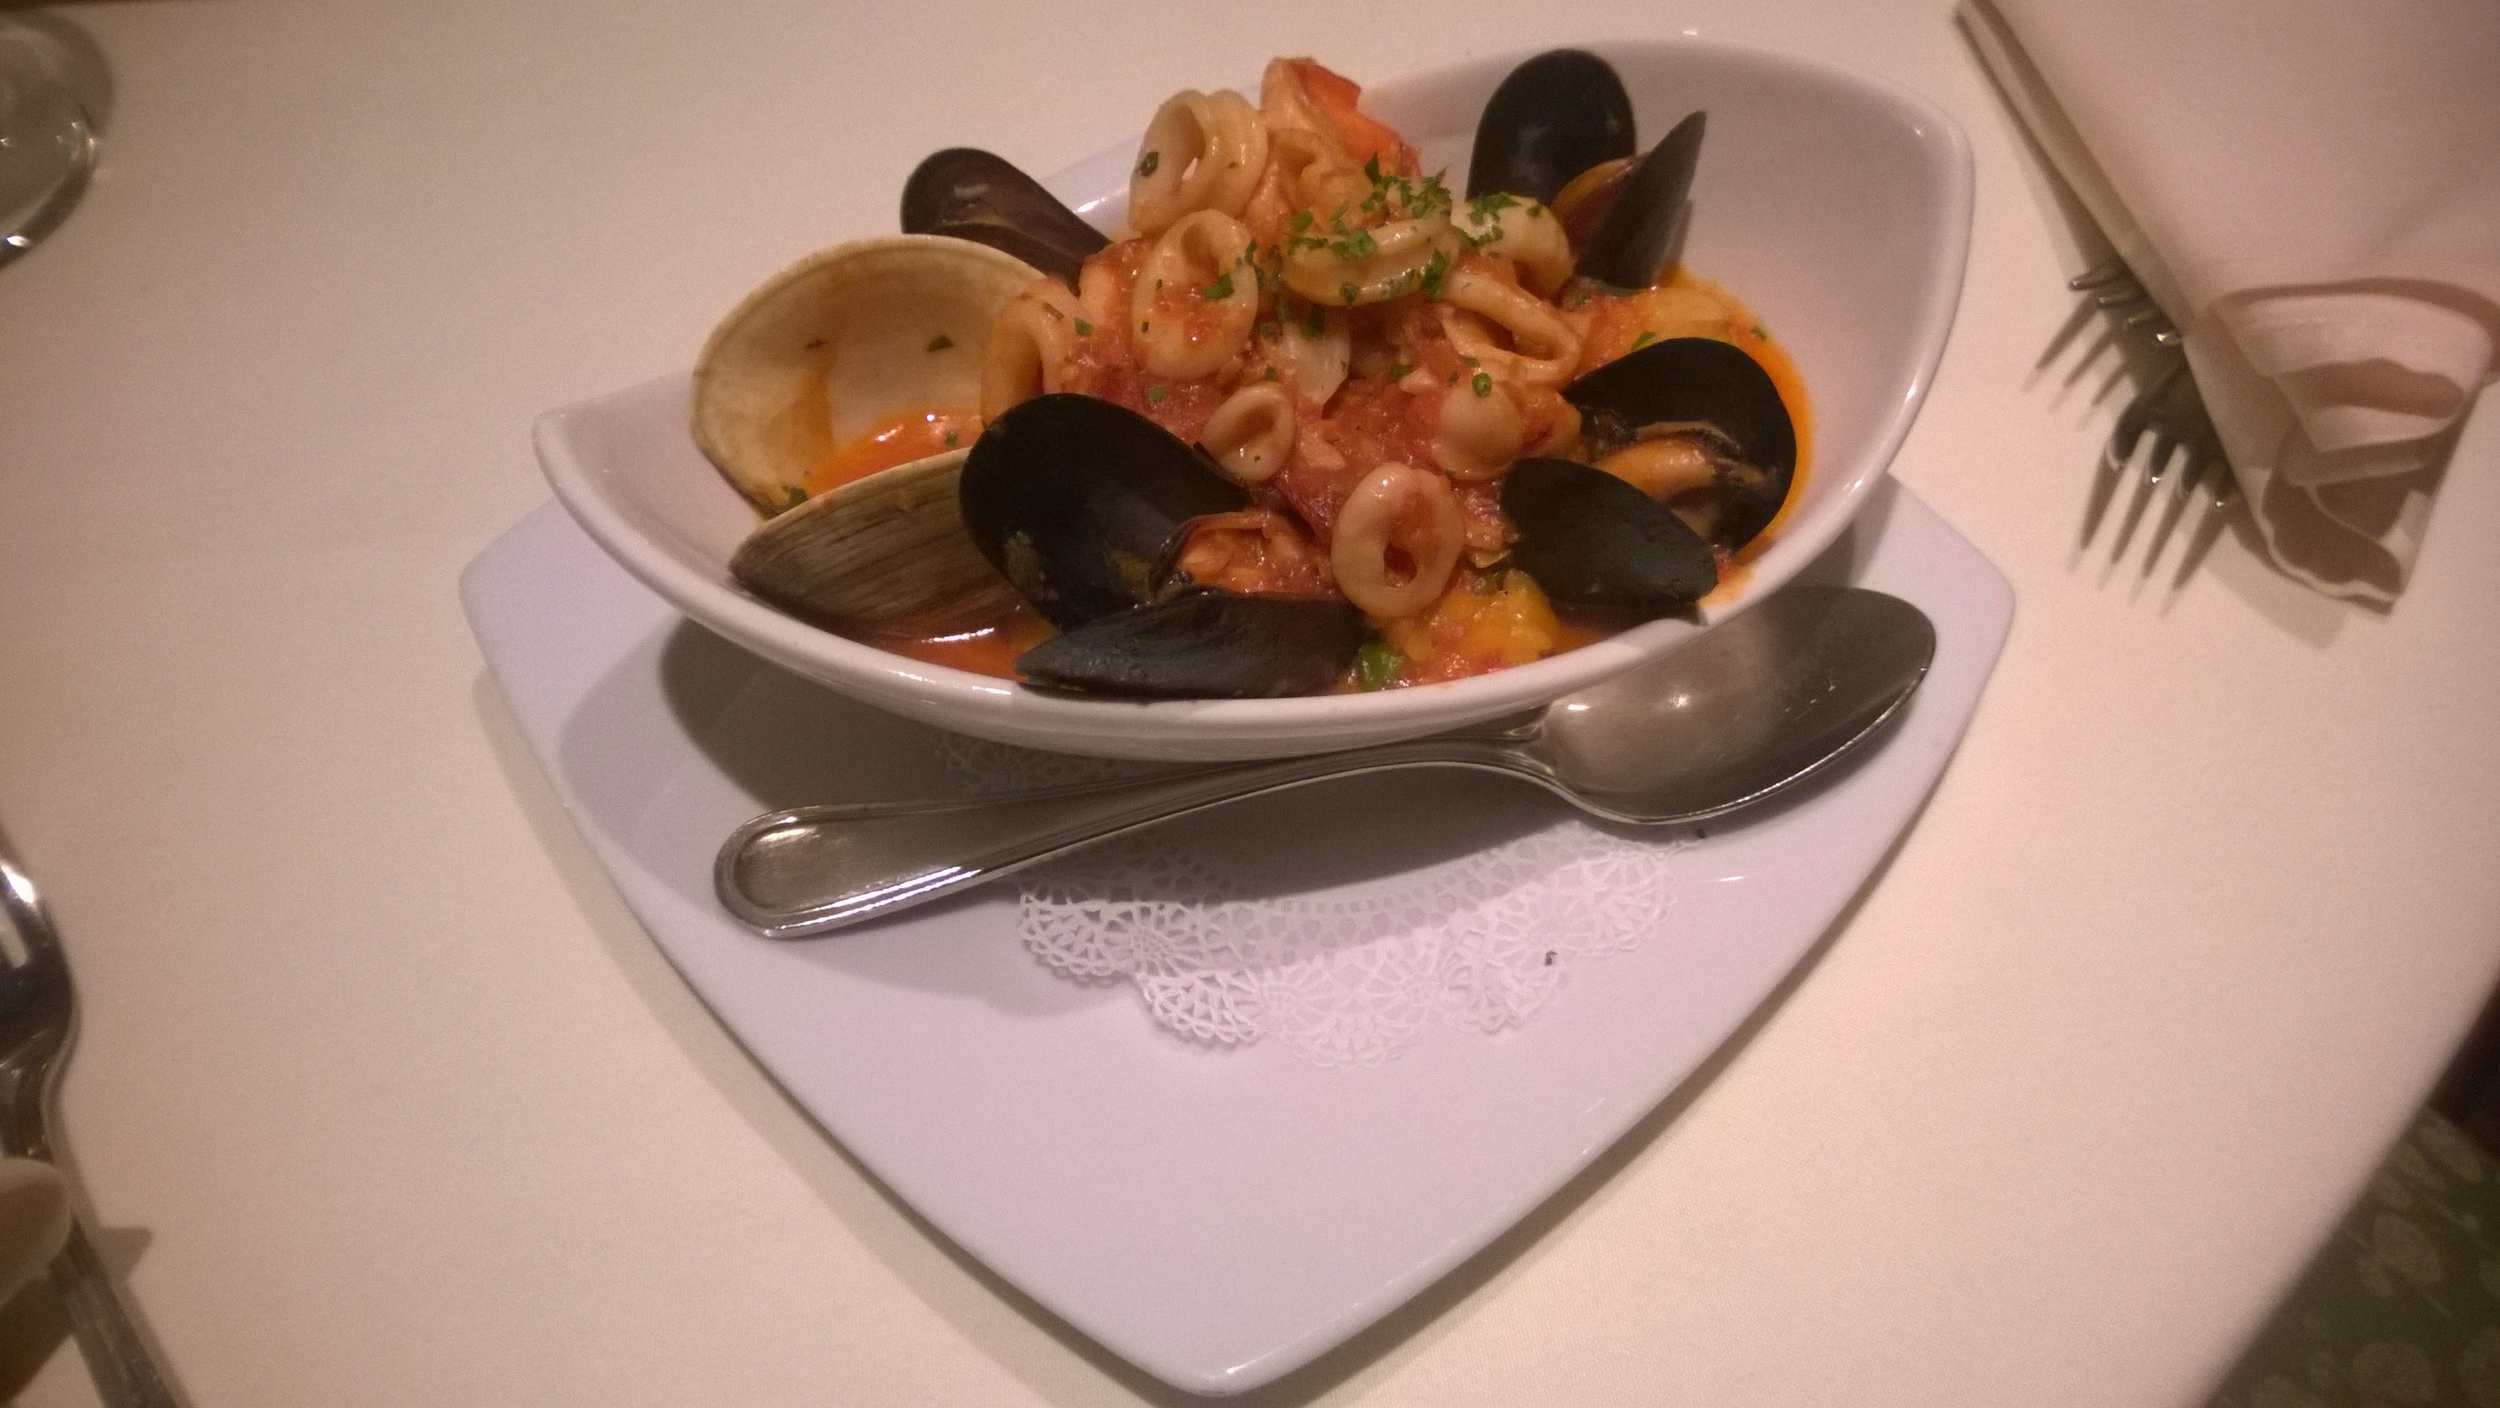 Seafood paella evokes images of Valencia, Spain.